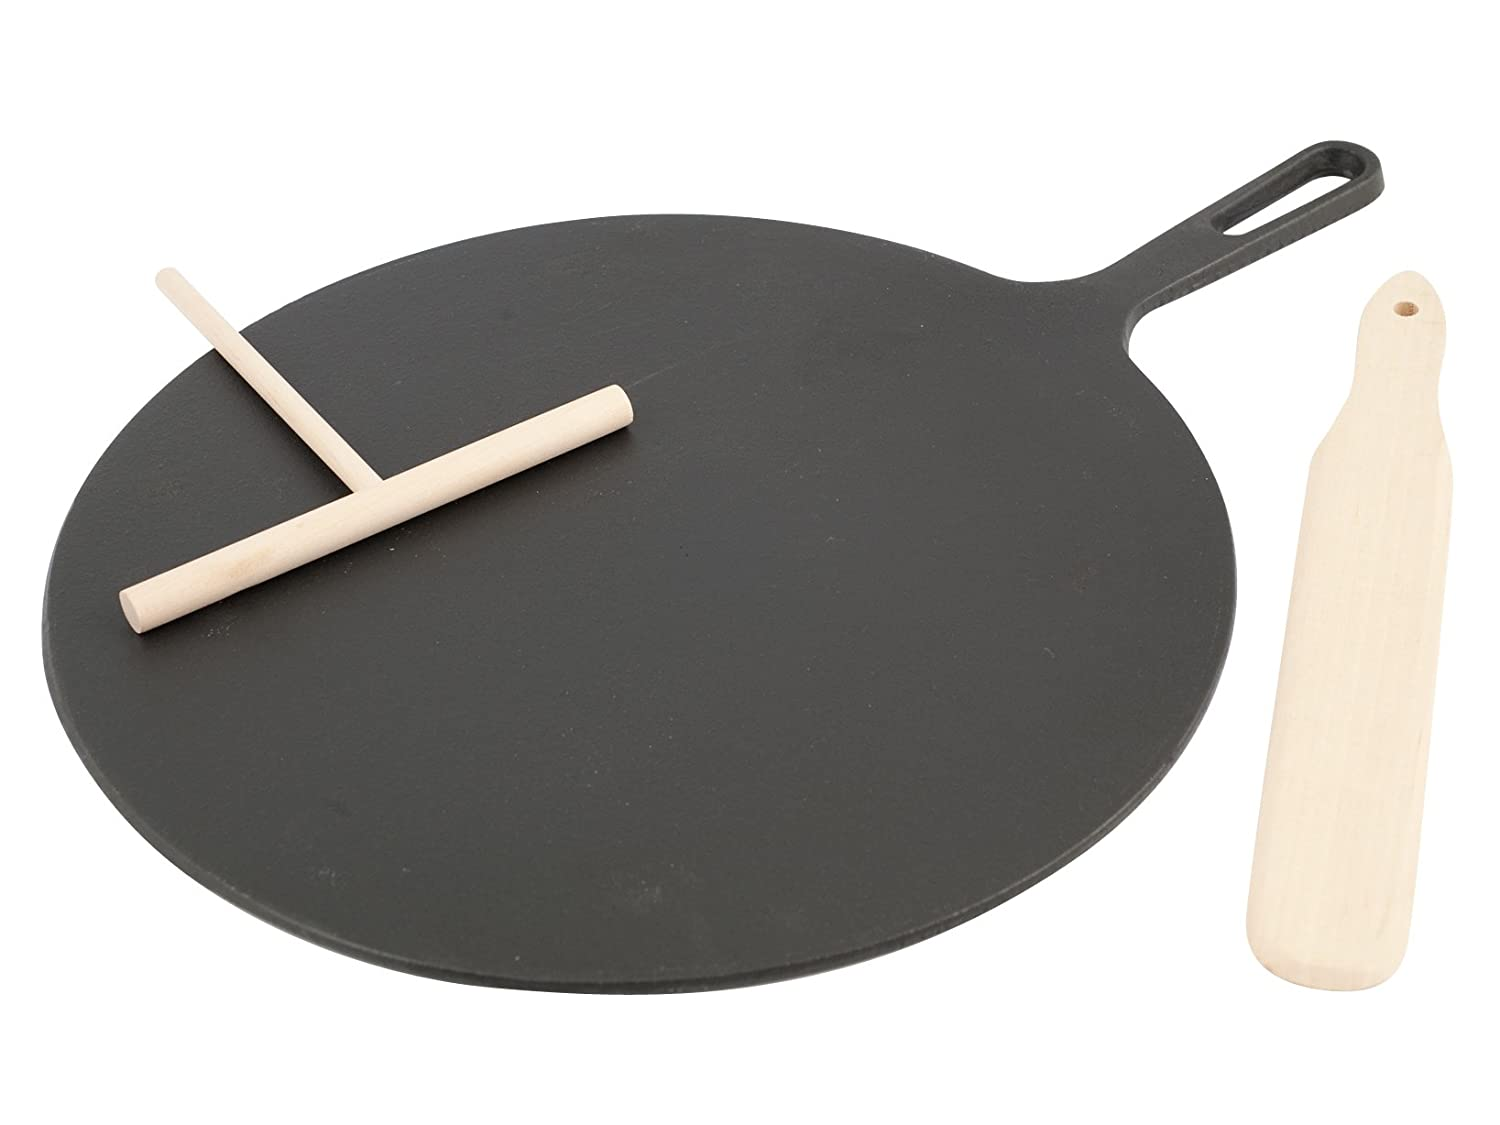 Cast Iron Crêpe and Omelette Pan with Spatulas Ilsa